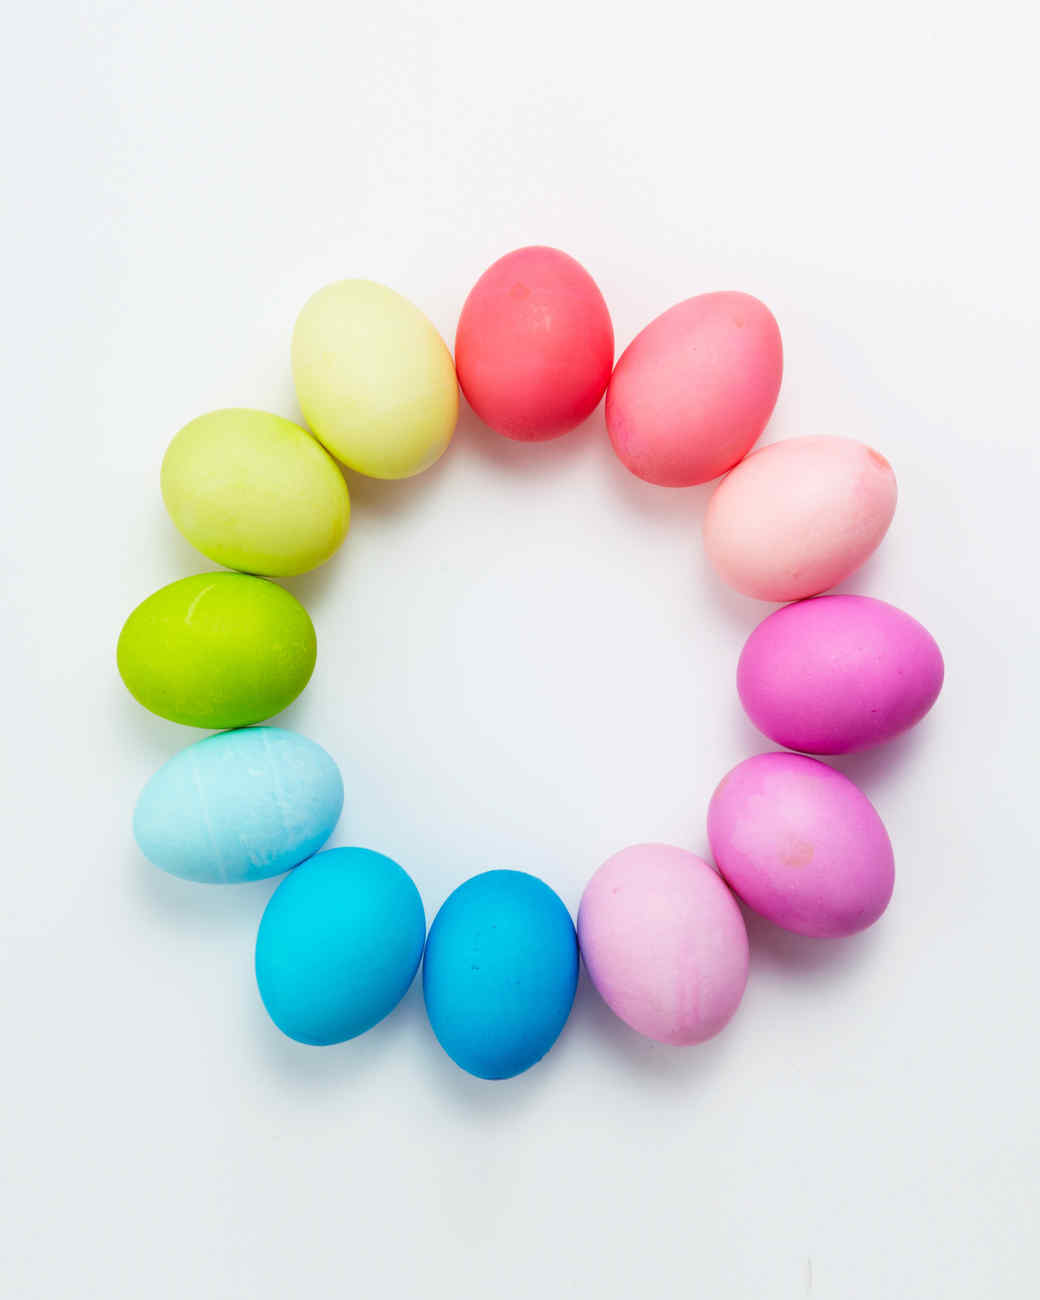 Best Food Coloring For Easter Eggs